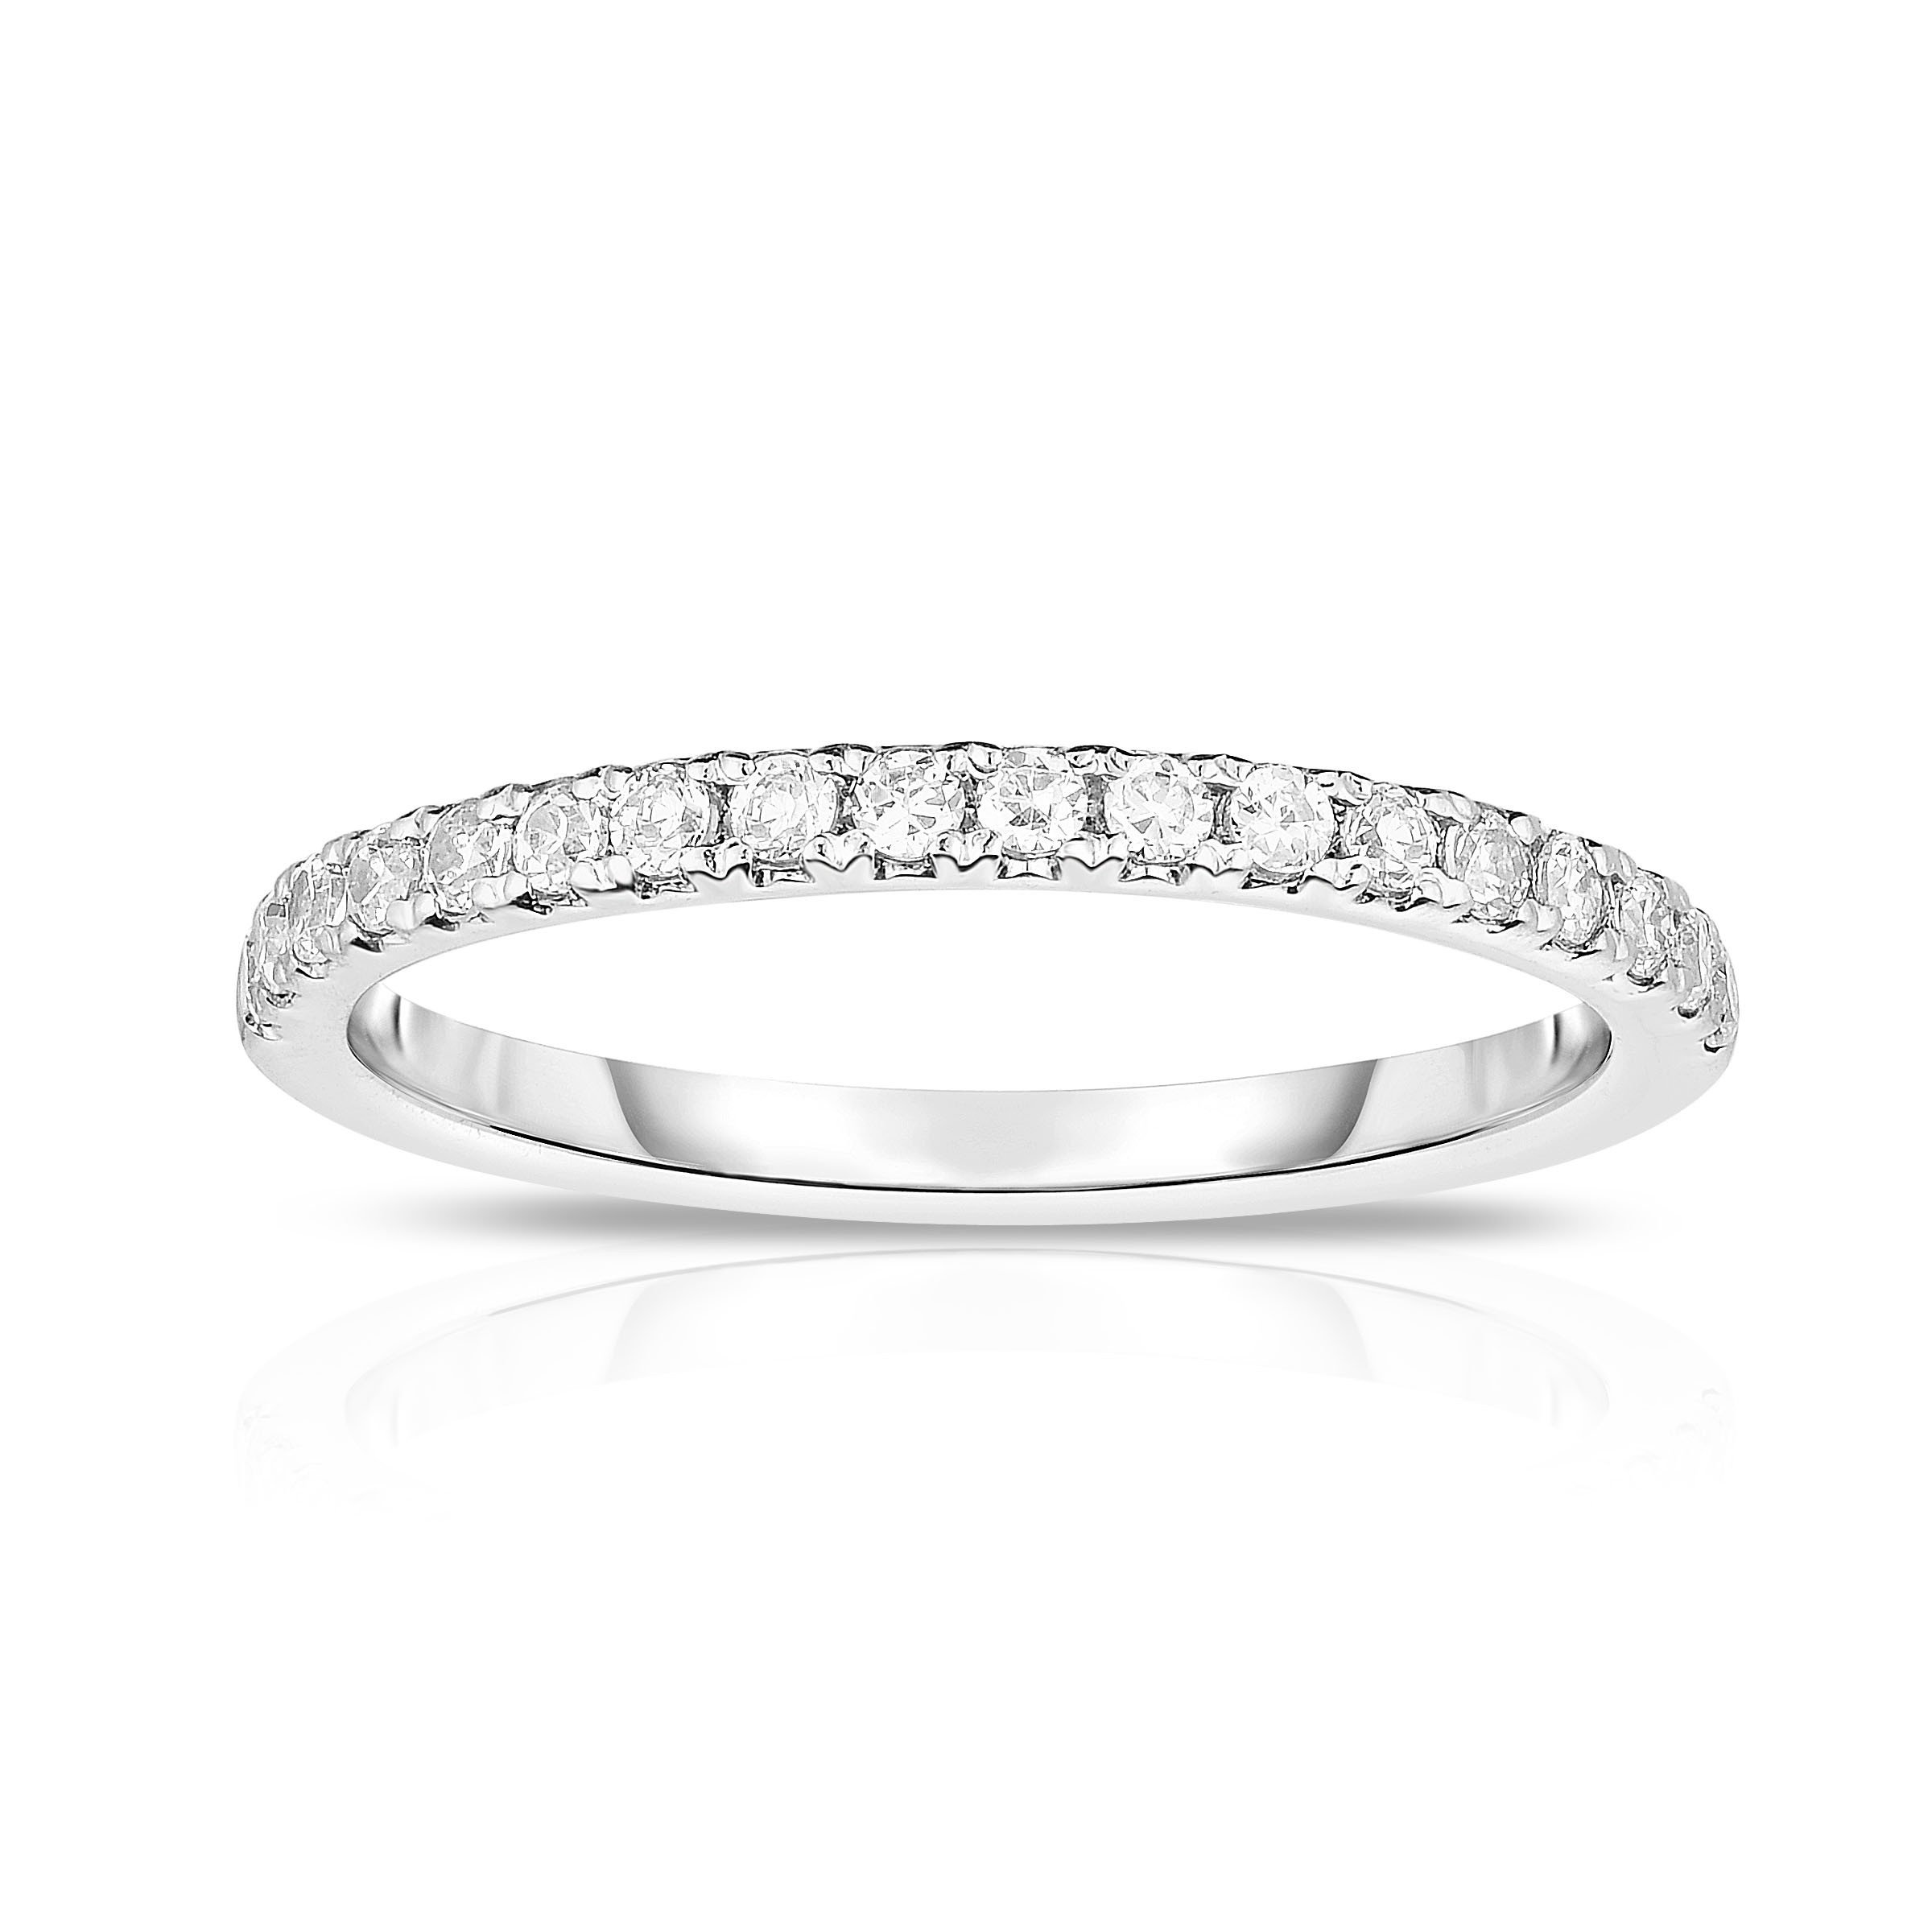 Noray Designs 14K White Gold Diamond (0.35 Ct, G-H Color, SI2-I1 Clarity) Wedding Band